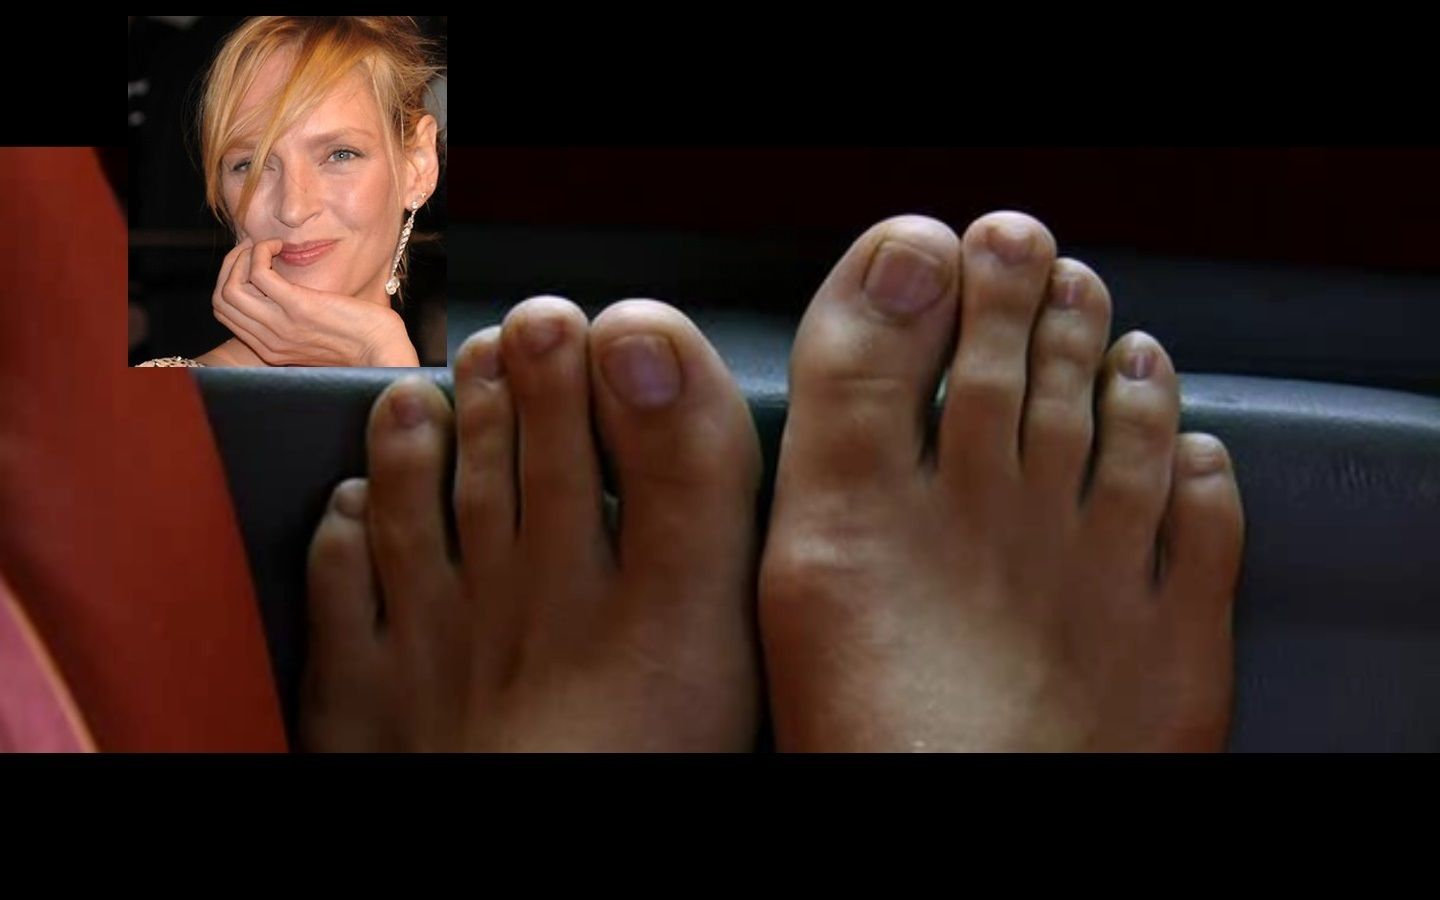 Boobs Feet Uma Thurman naked photo 2017